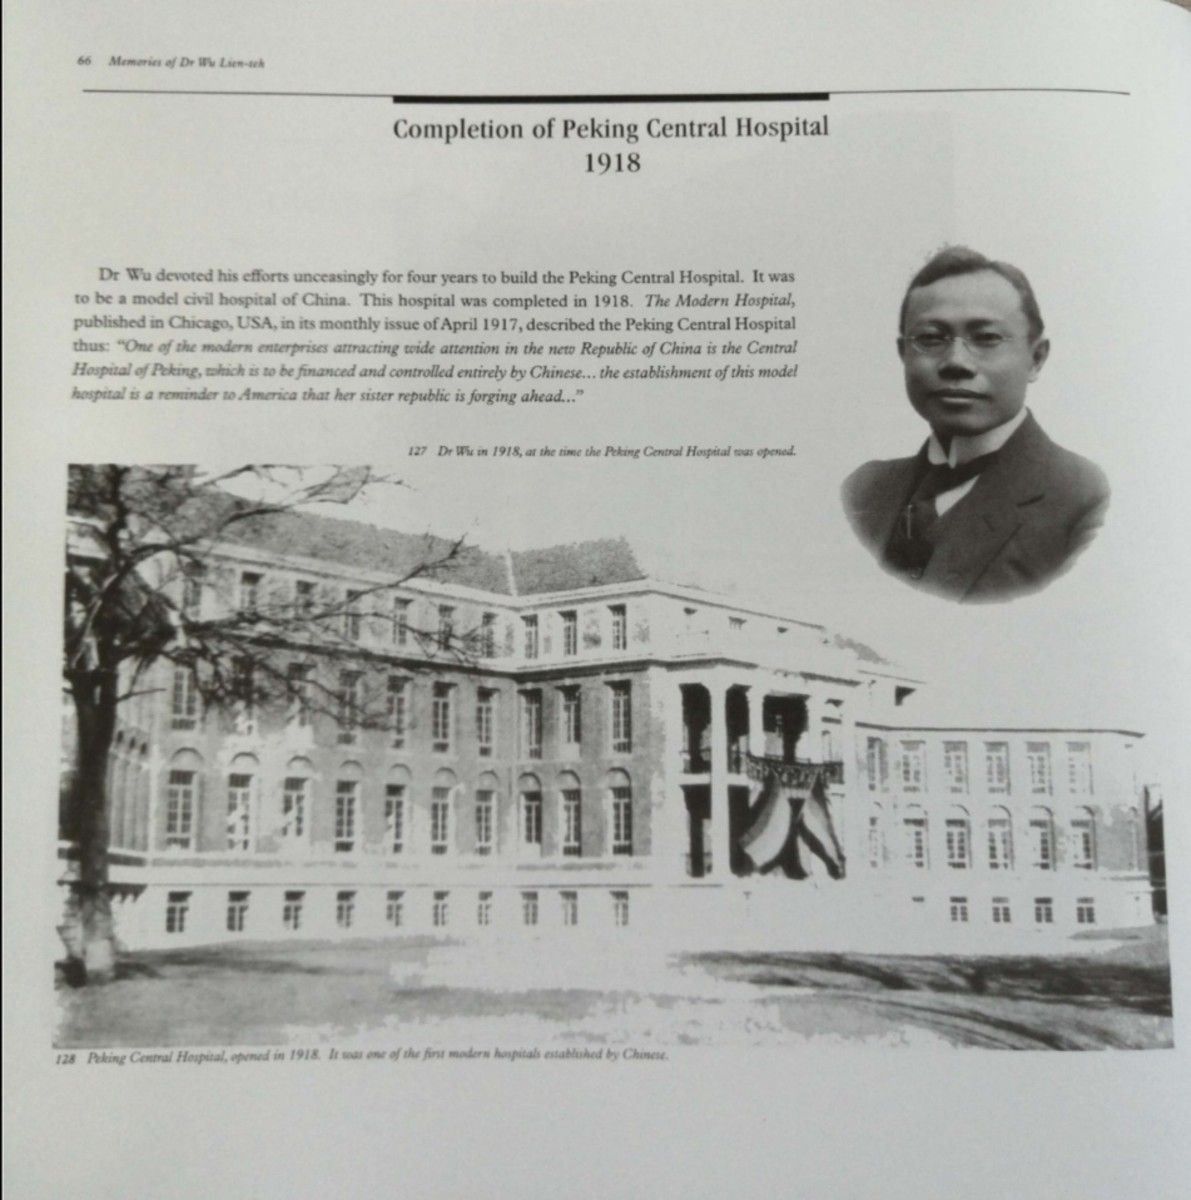 The pride of China's health advancement. The first model civil hospital of China. Peking Central Hospital, opened in 1918.